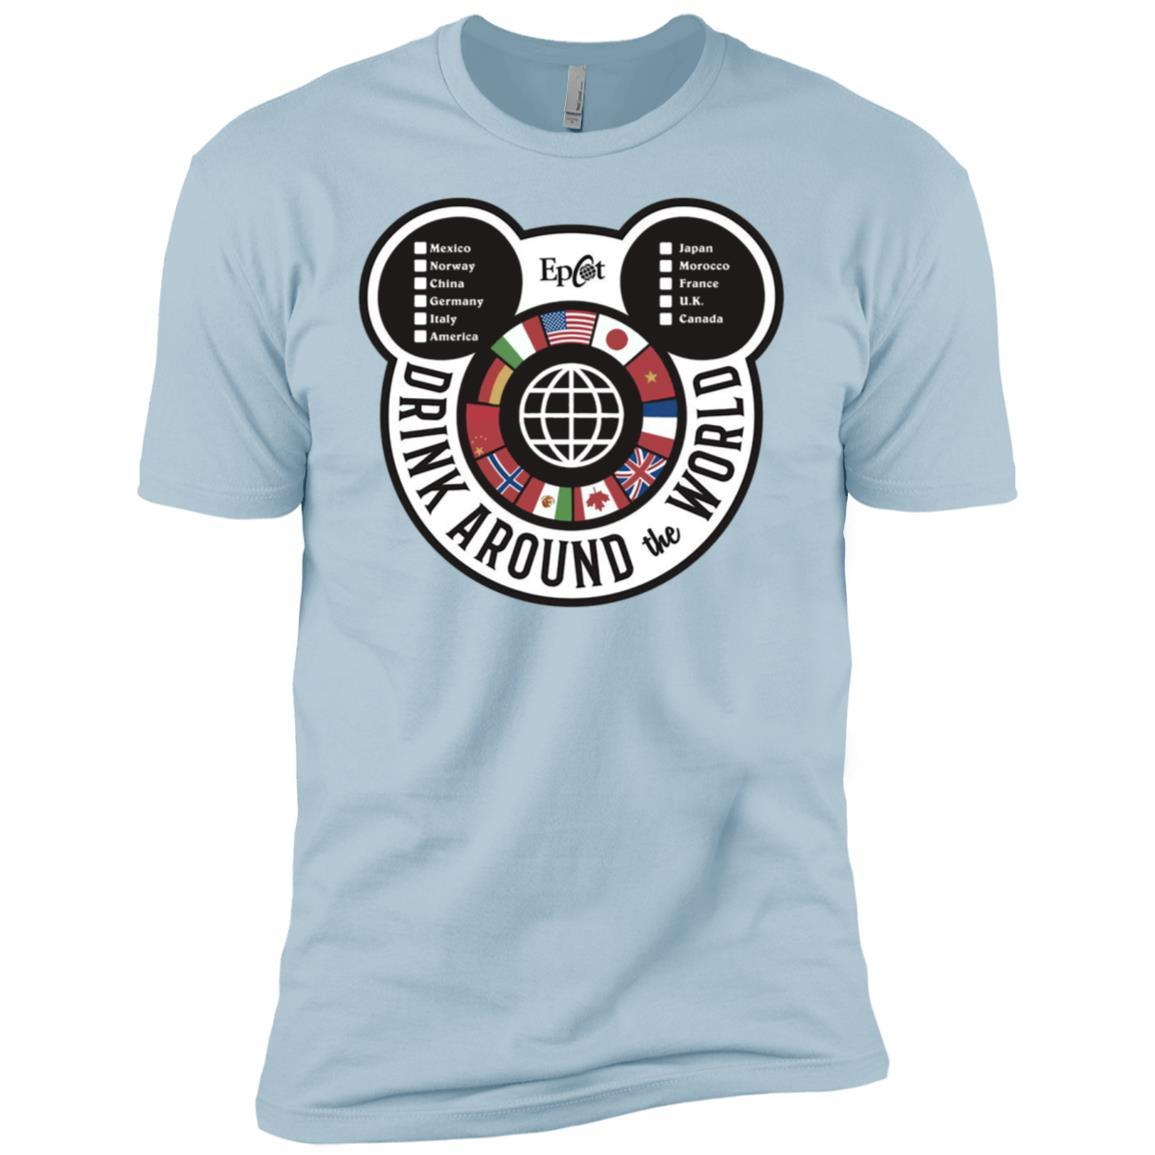 Drink Around the World - EPCOT Checklist - Short Sleeve T-Shirt Light Blue / 3XL